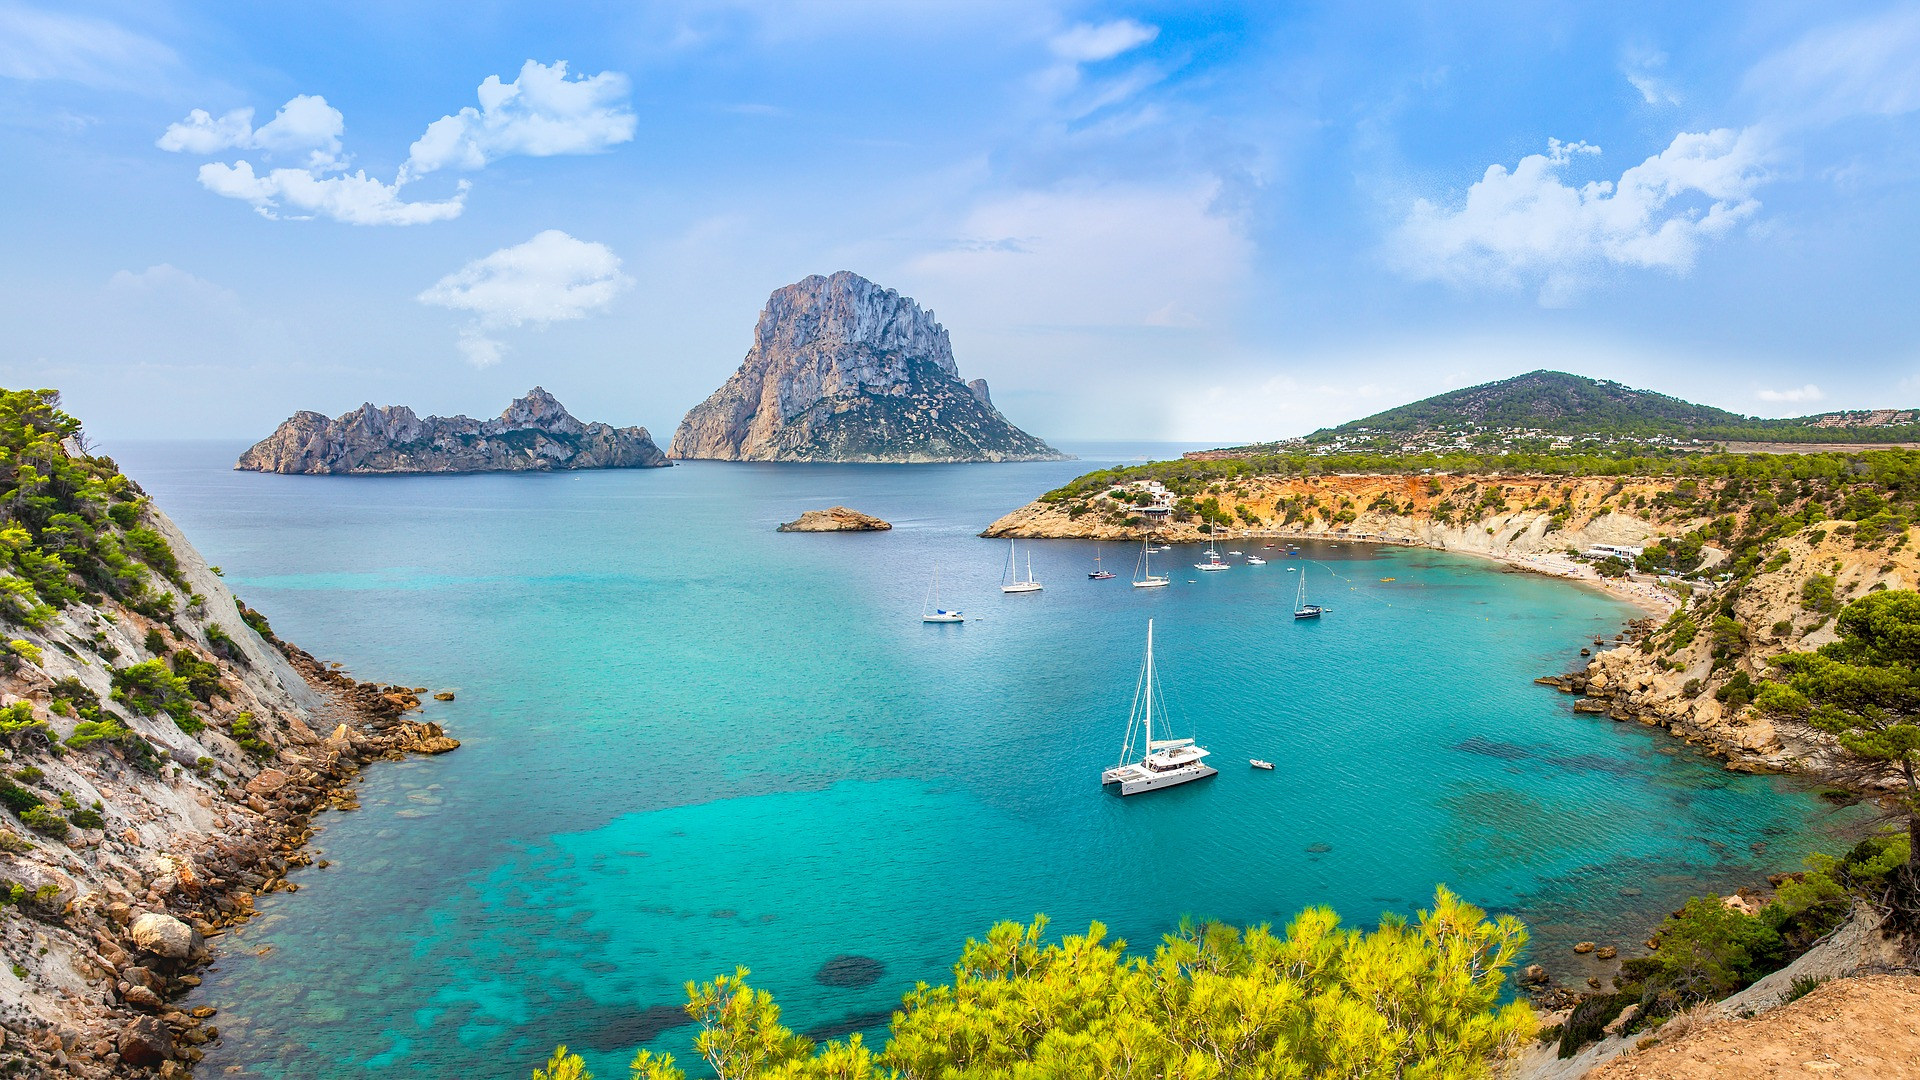 Best Things to Do in Ibiza - With Yachts and Catamarans